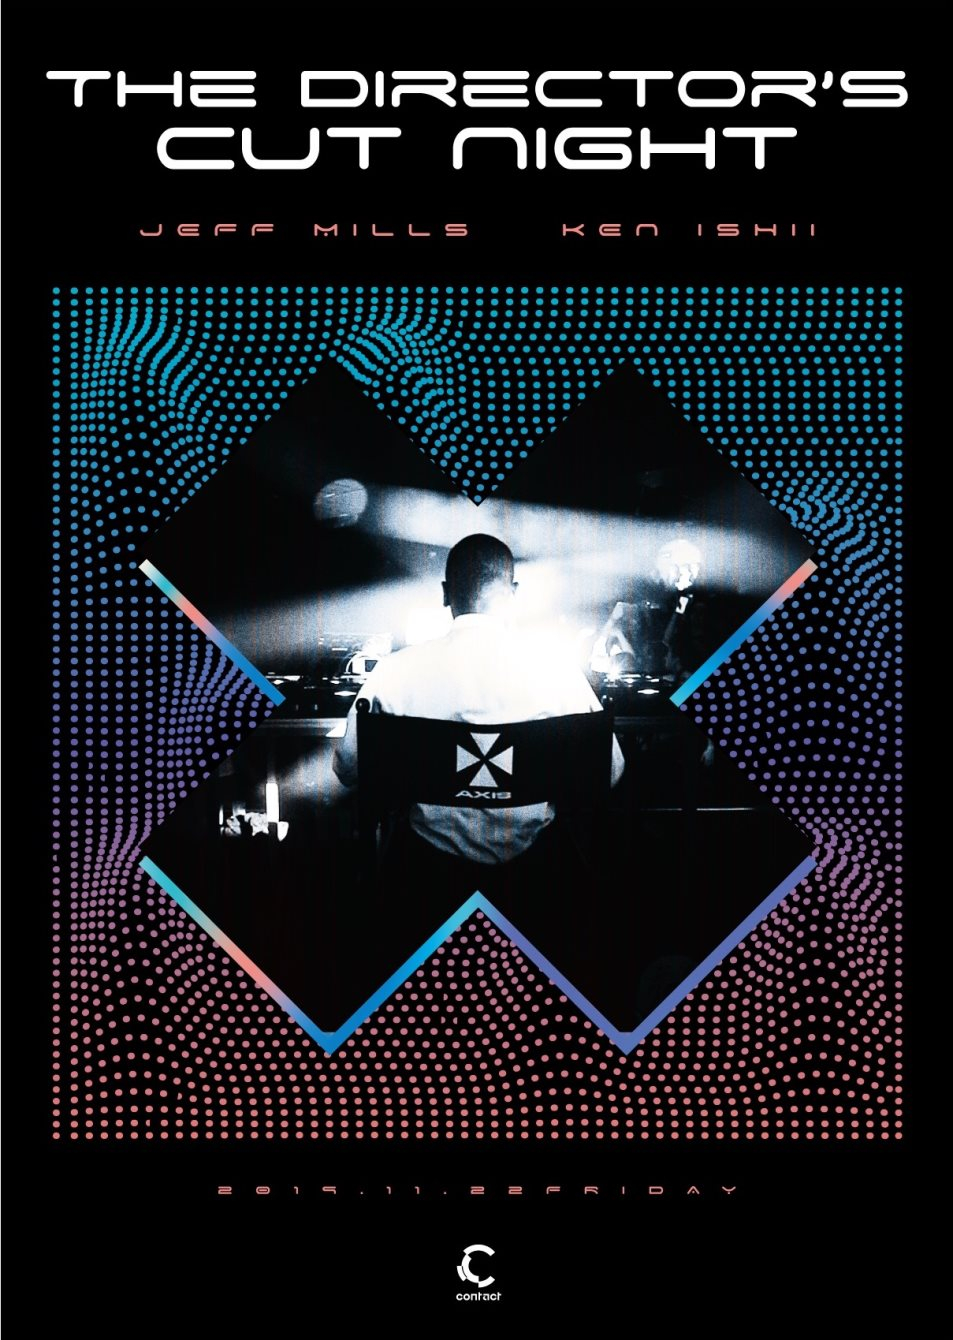 Jeff Mills - The Director's Cut Night - - Flyer front